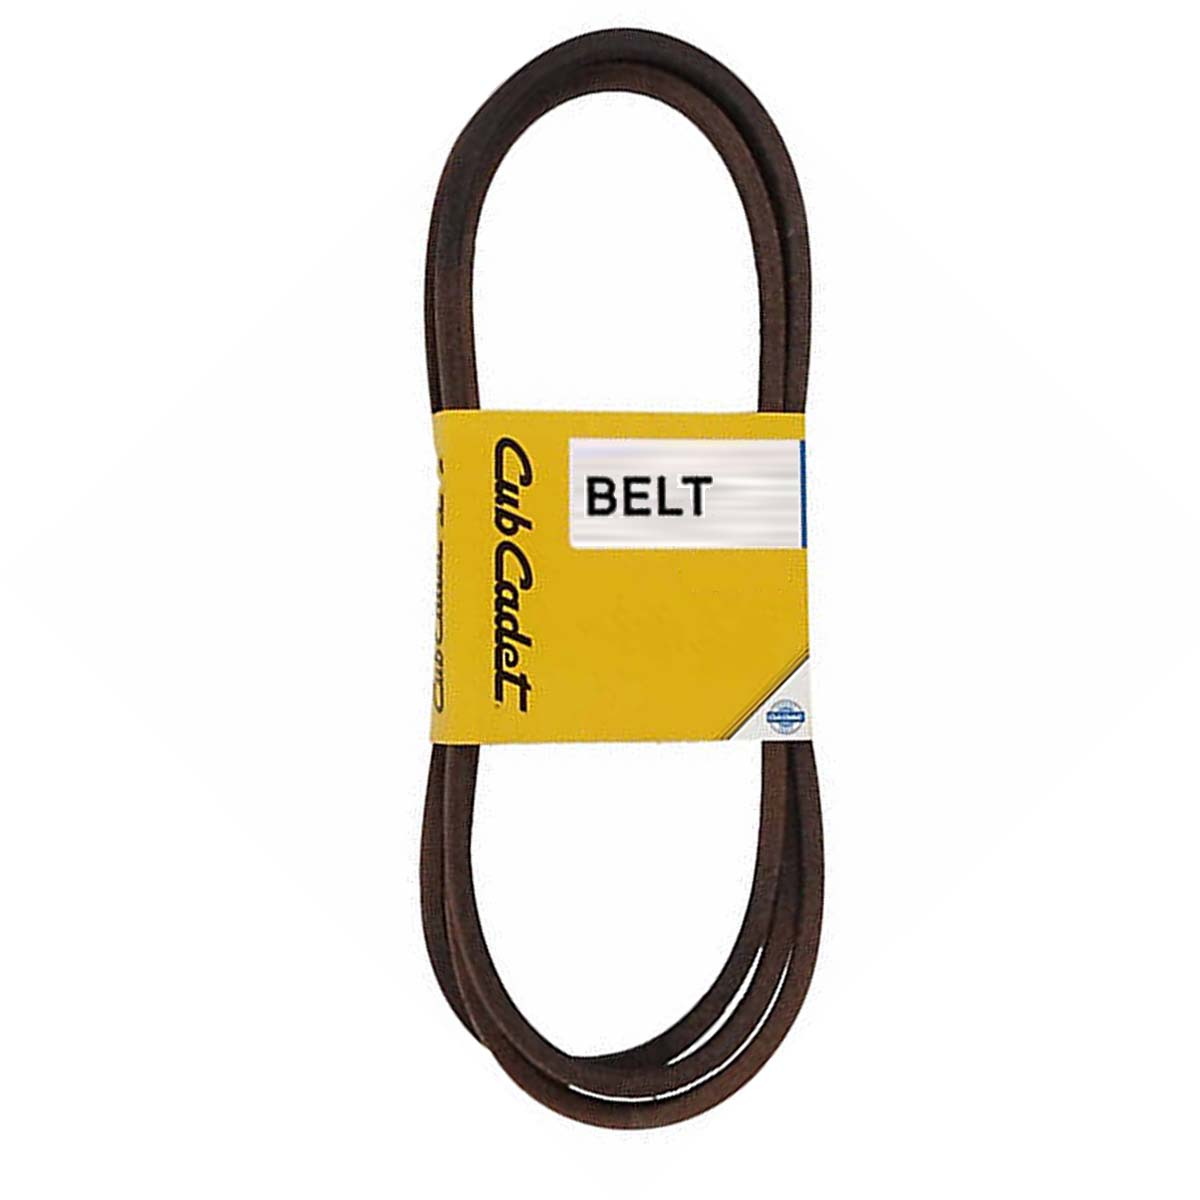 Belt-V (set of 2) 954-0430B